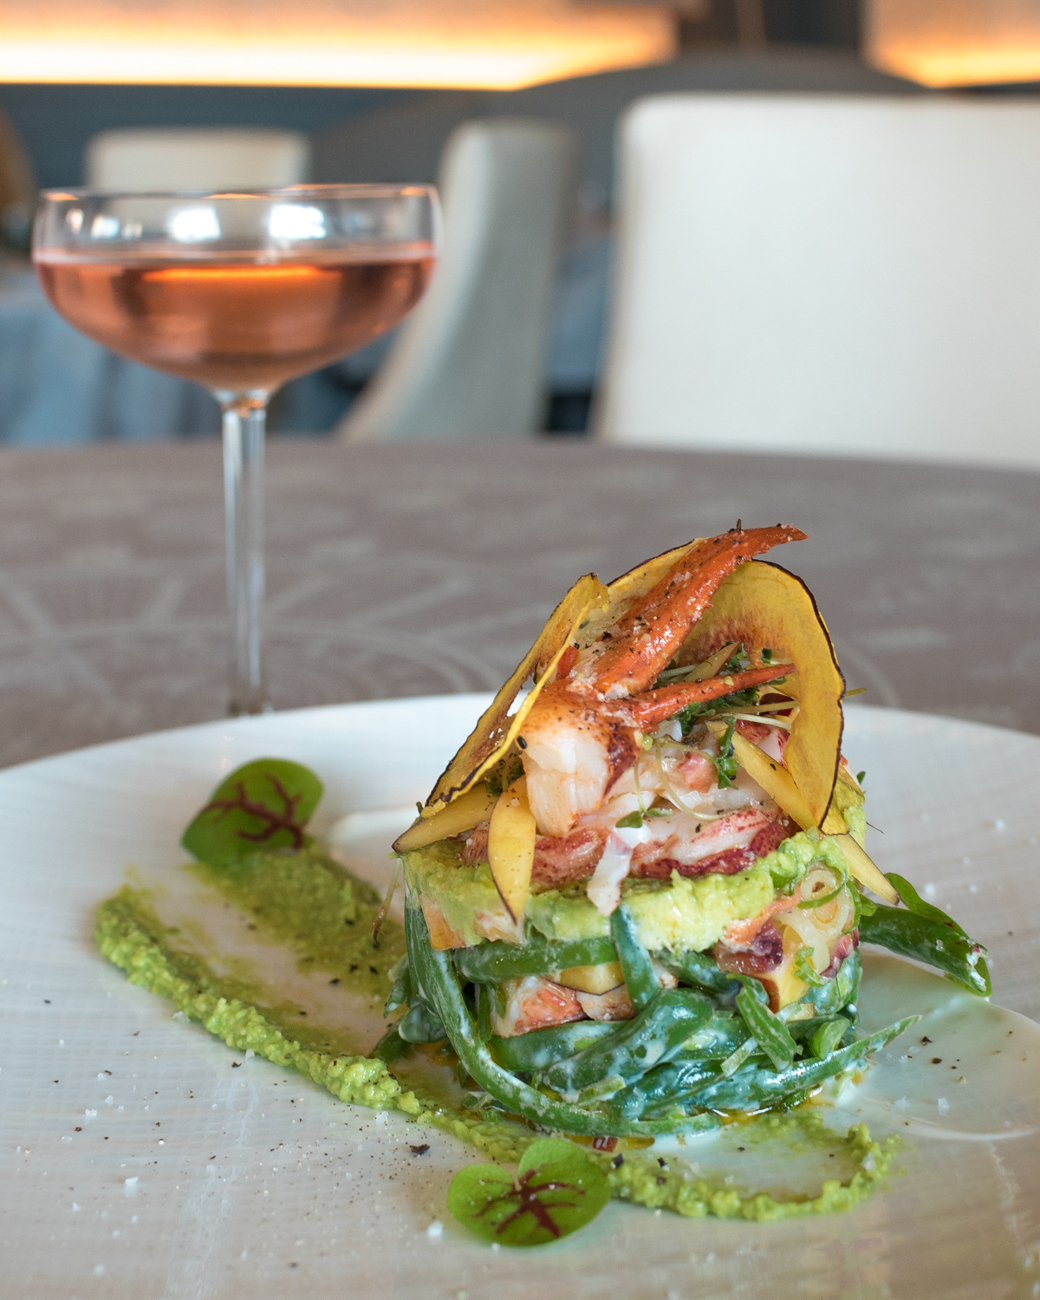 Maine Lobster: nectarine, green beans, avocado, arugula, and yogurt dressing / Image: Phil Armstrong, Cincinnati Refined